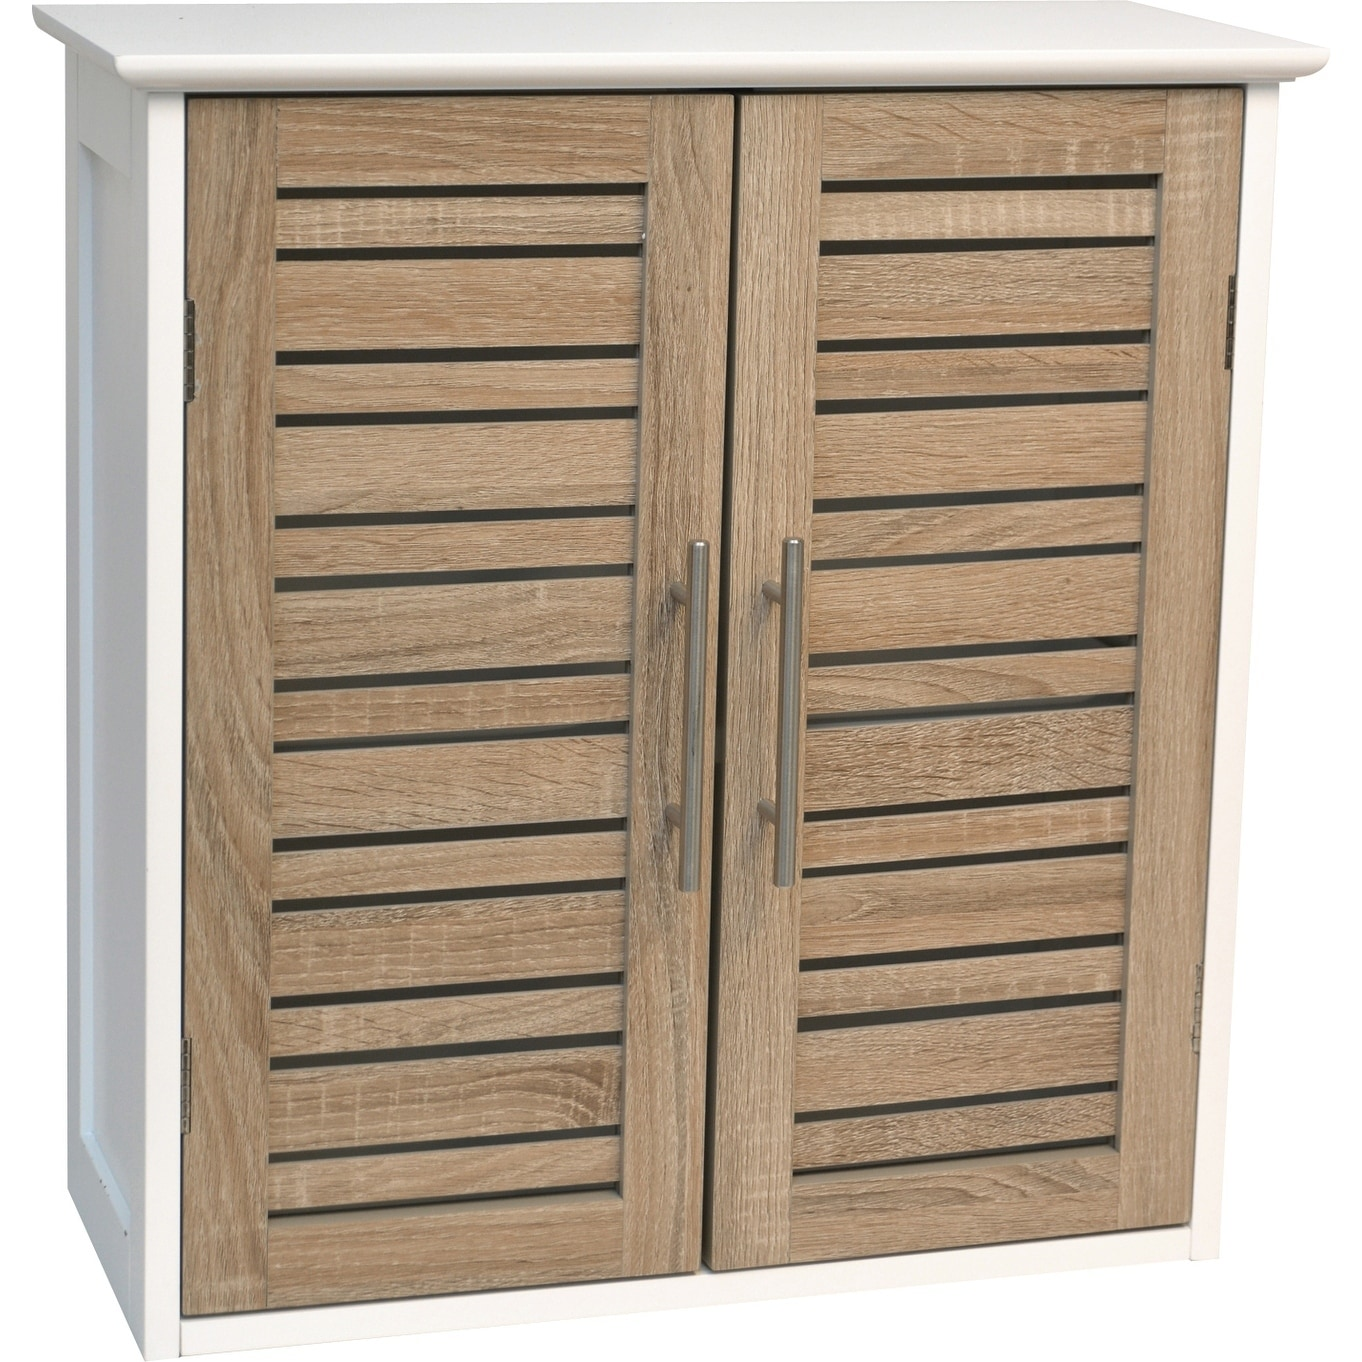 Shop Evideco Bathroom Wall Mounted Storage Cabinet Wood Stockholm Oak    Free Shipping Today   Overstock   17000791